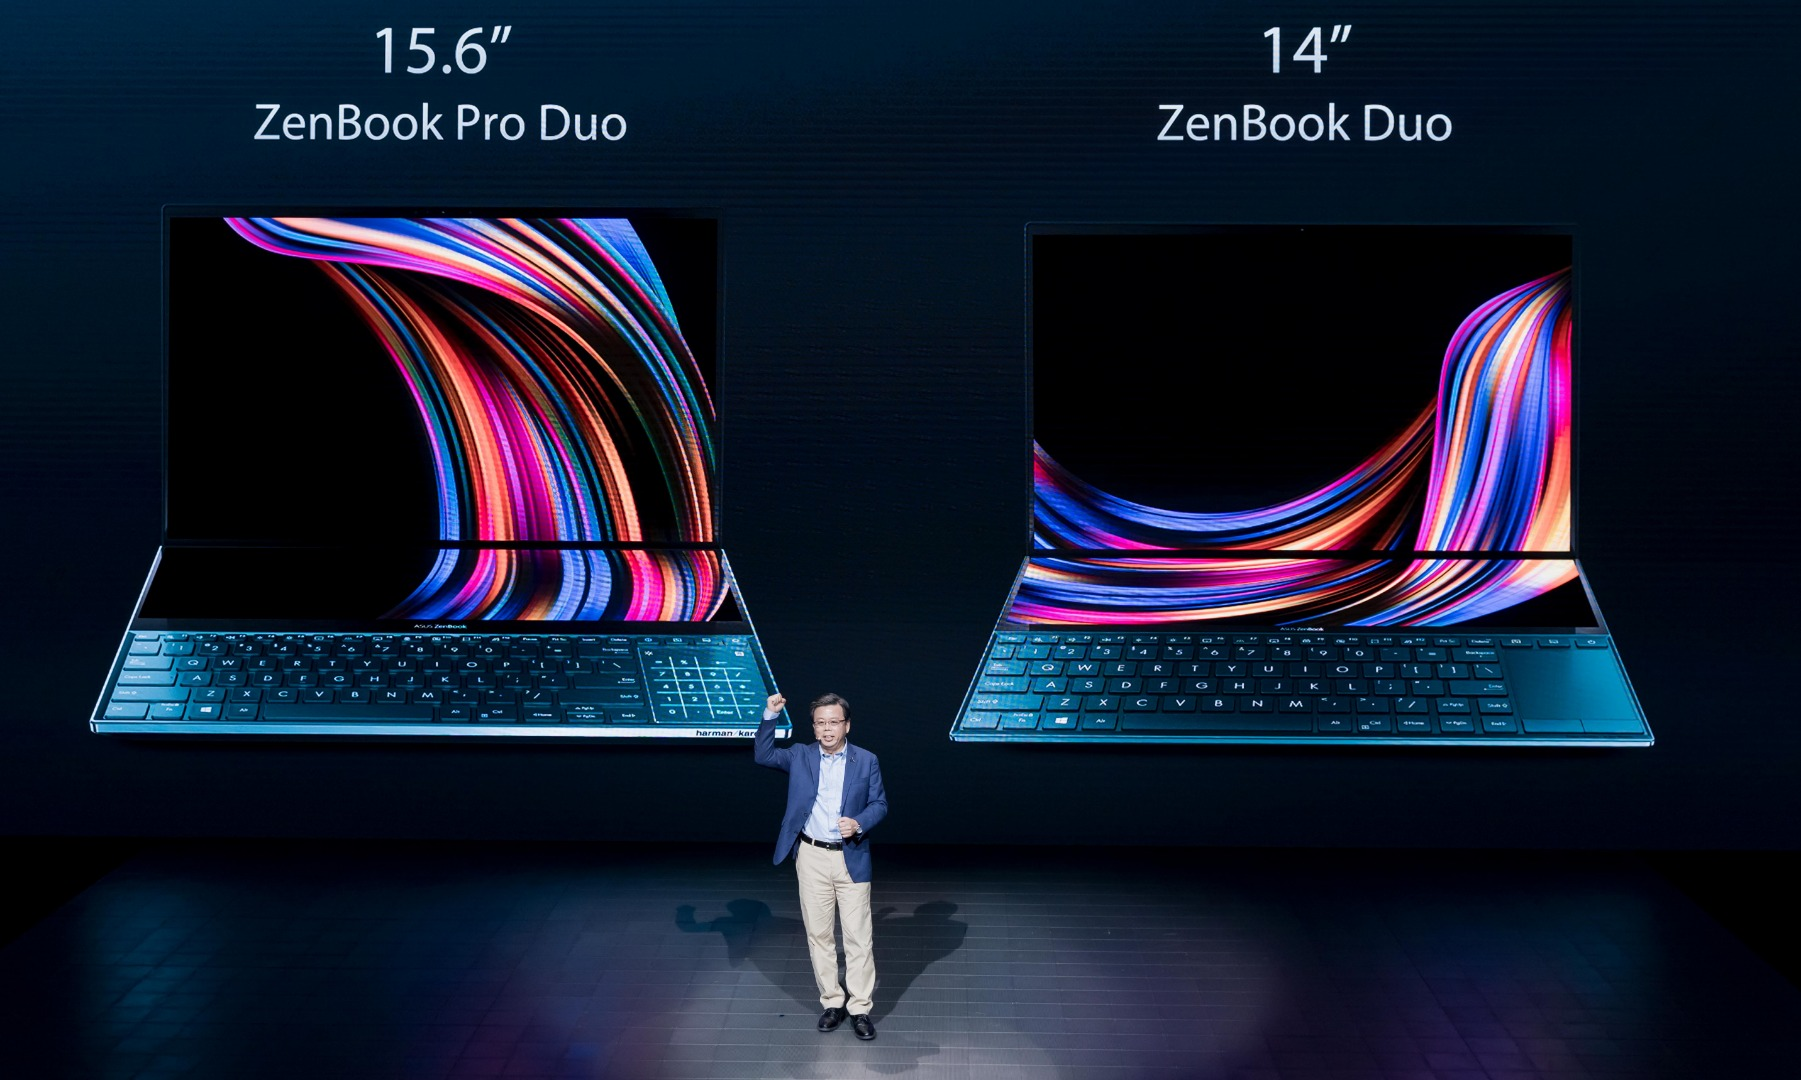 Asus Zenbook Pro Duo Puts A Large Second 4k Screen Above The Keyboard Slashgear